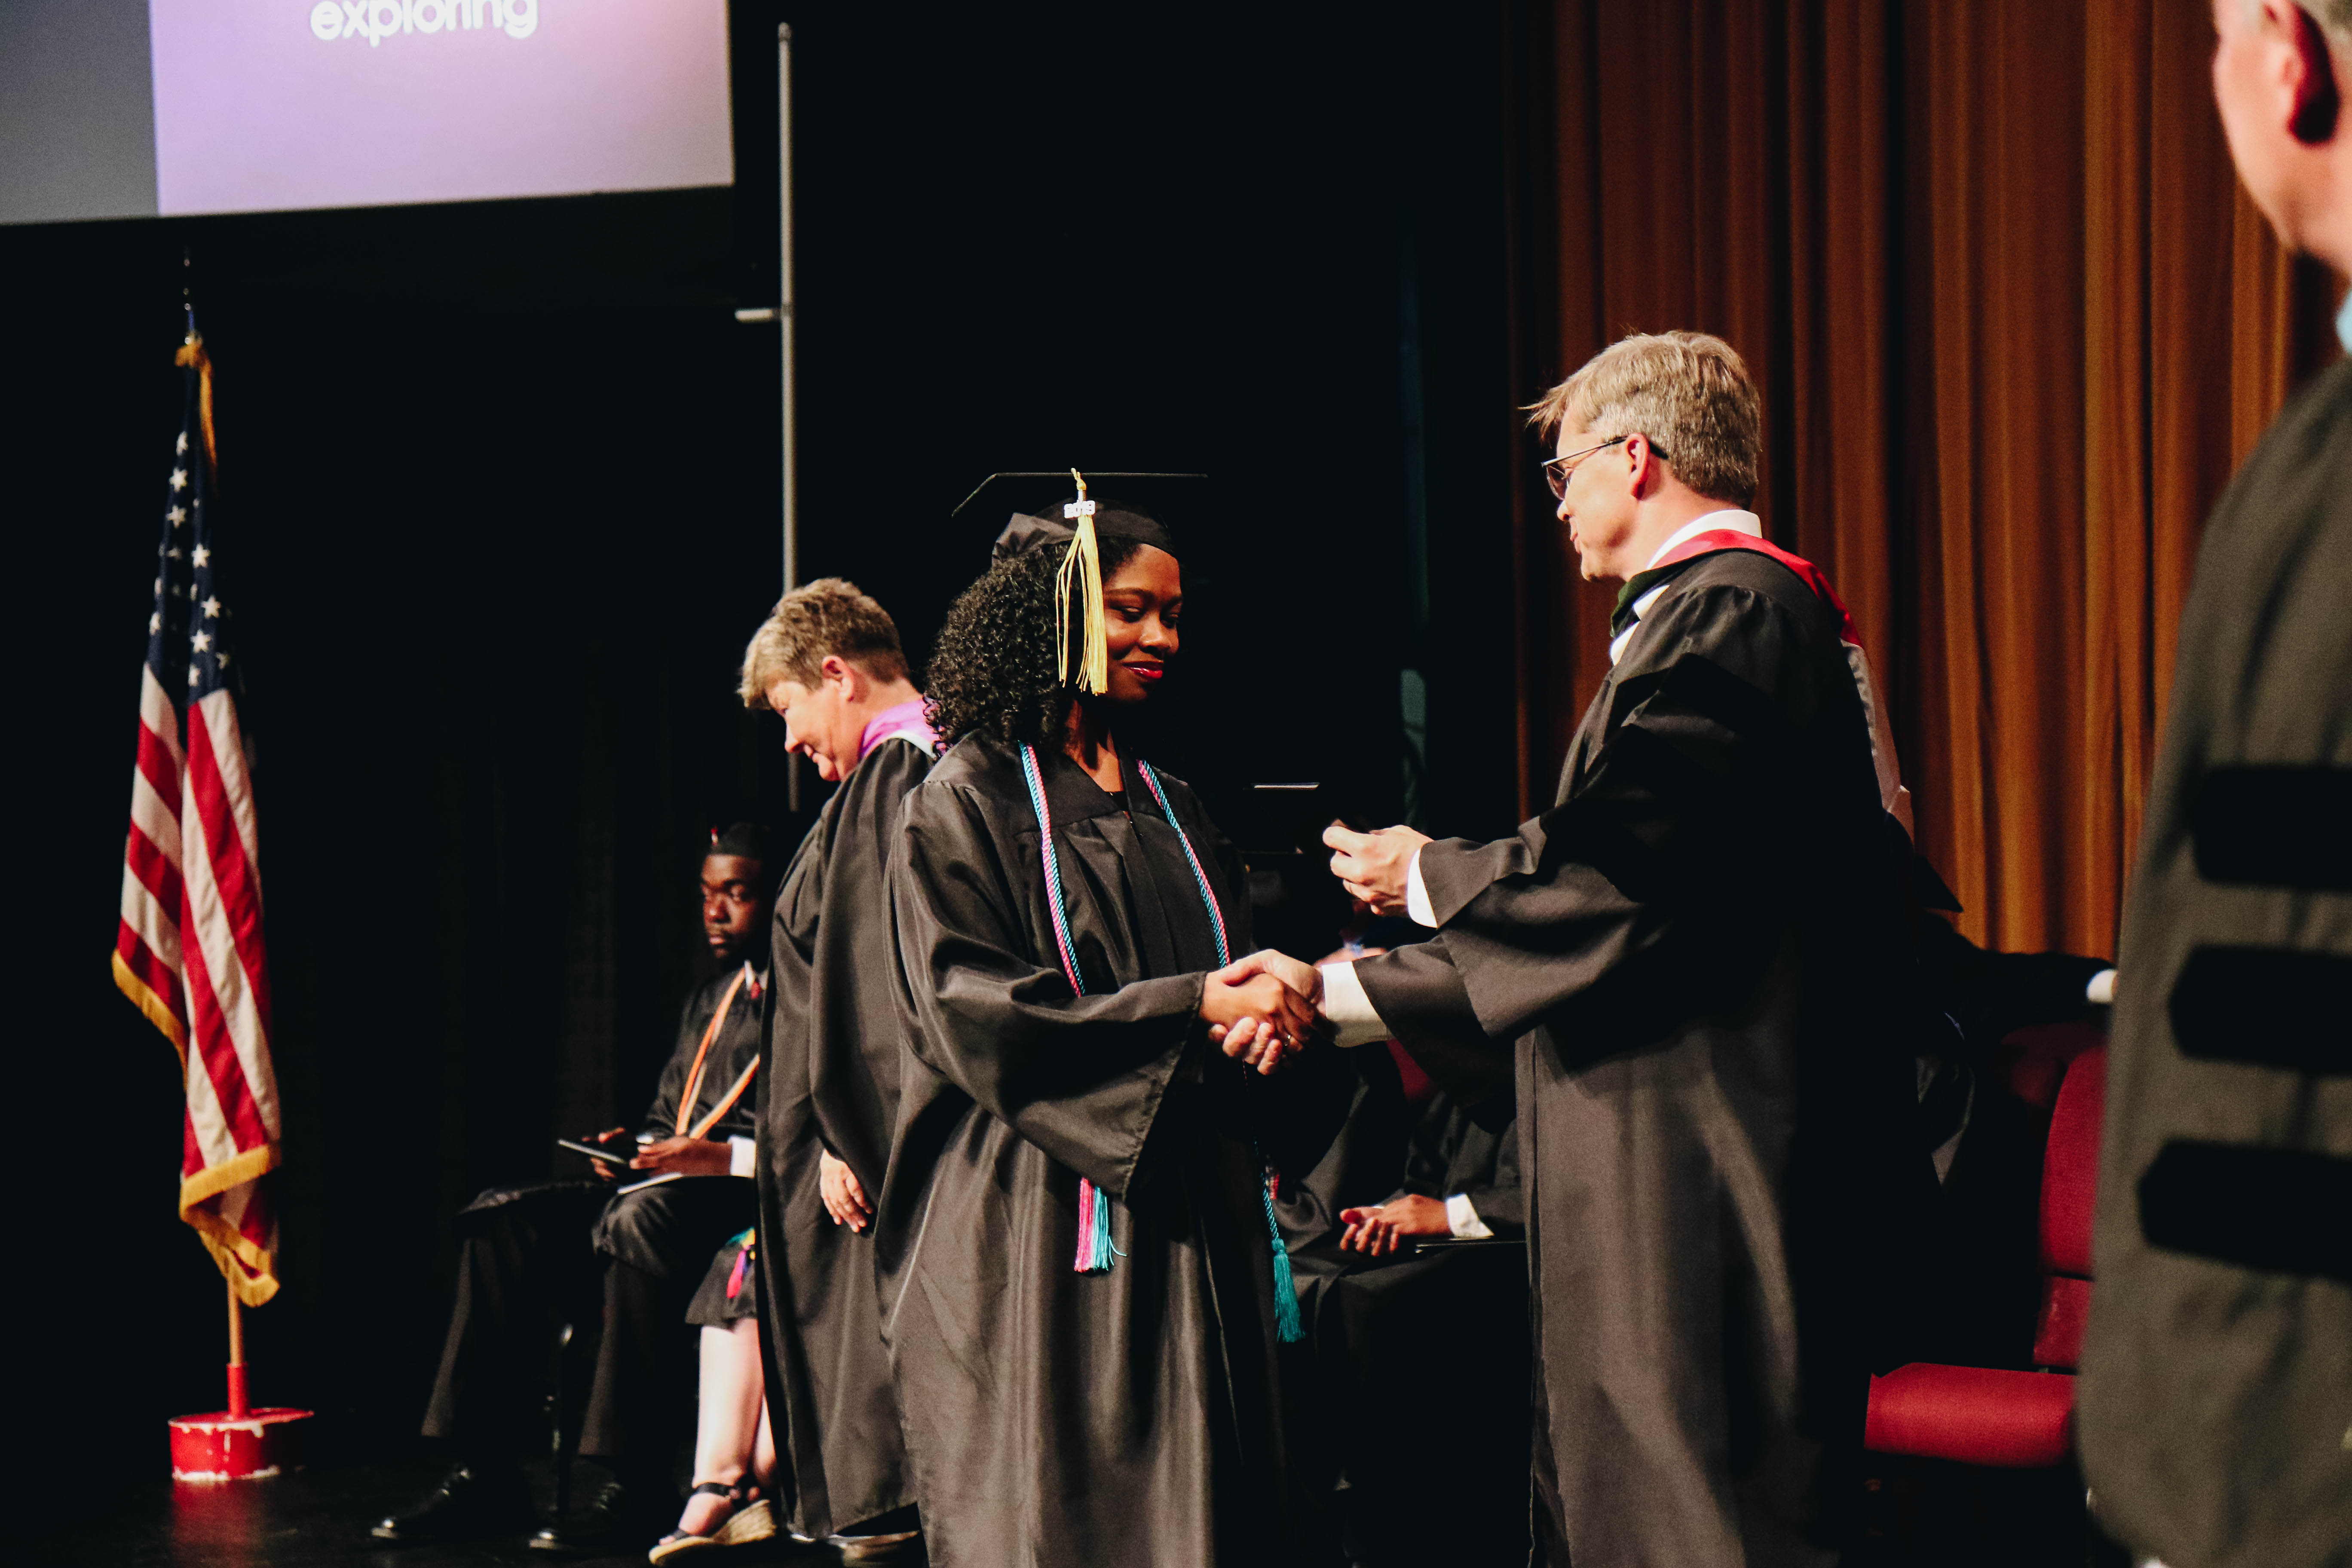 Female Morris student walking across stage at graduation